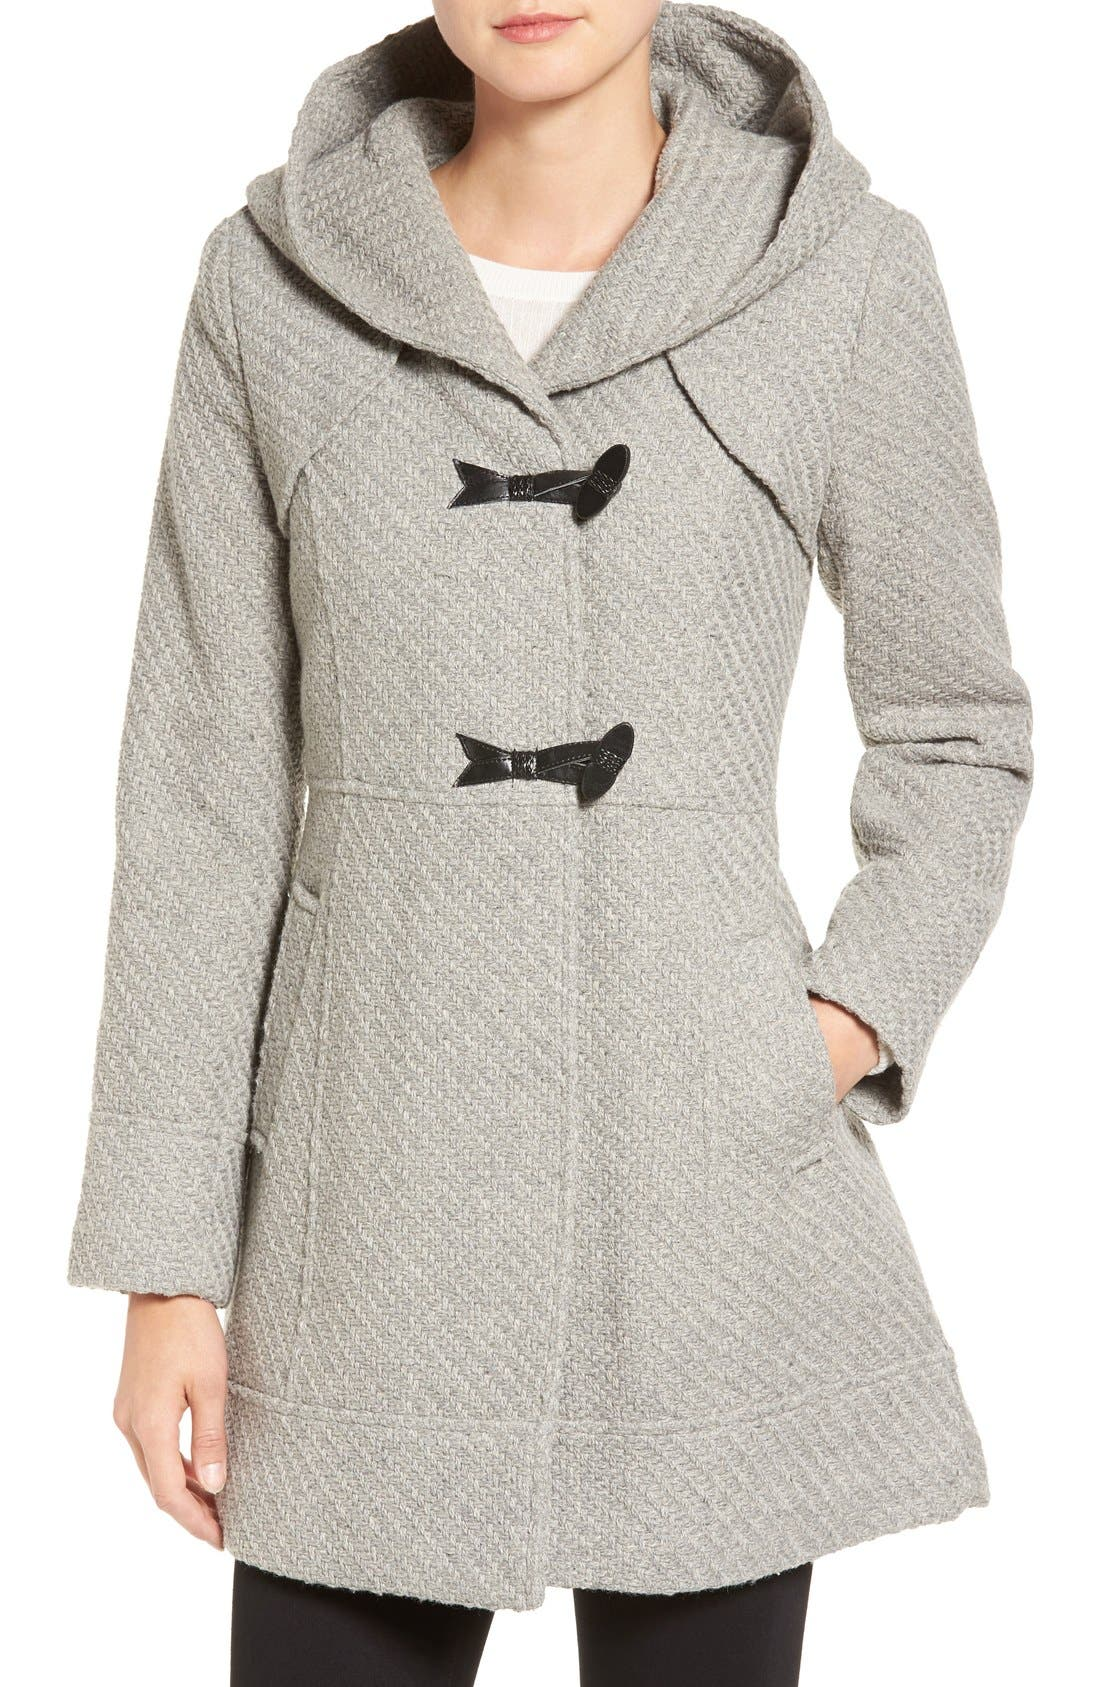 Alternate Image 1 Selected - Jessica Simpson Hooded Basket Weave Duffle Coat